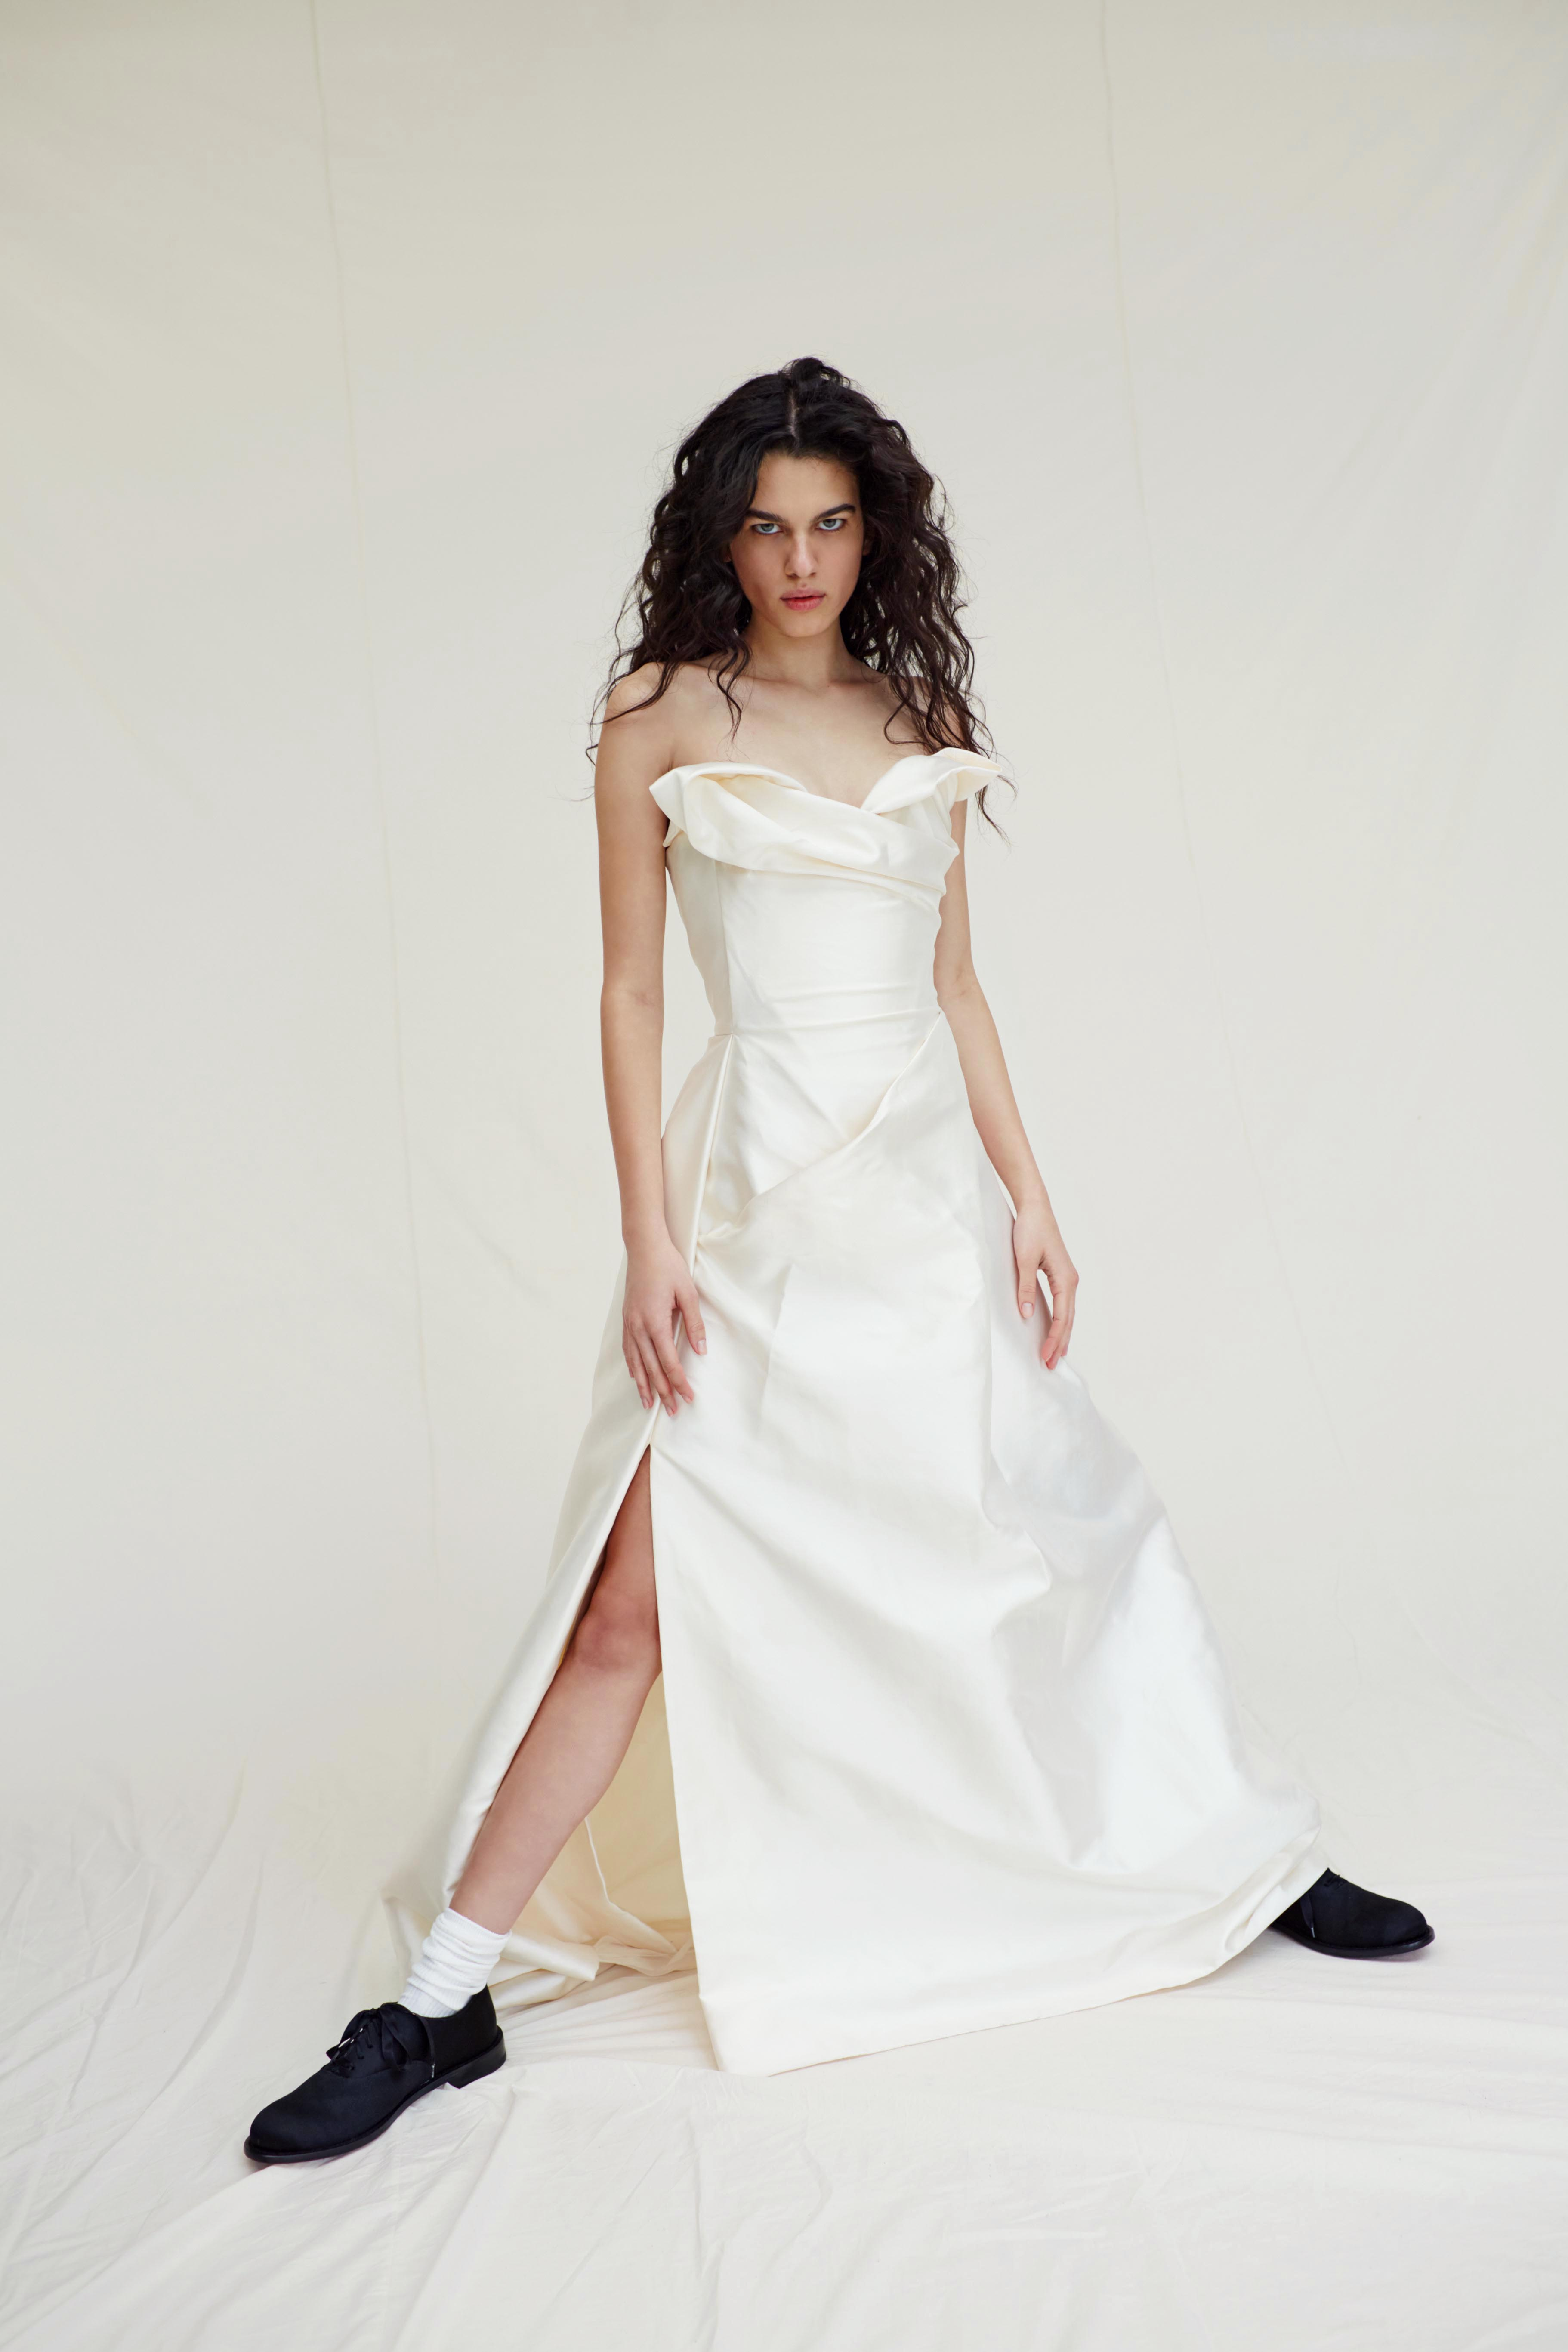 vivienne westwood wedding dress Spring 2019 strapless a-line high slit